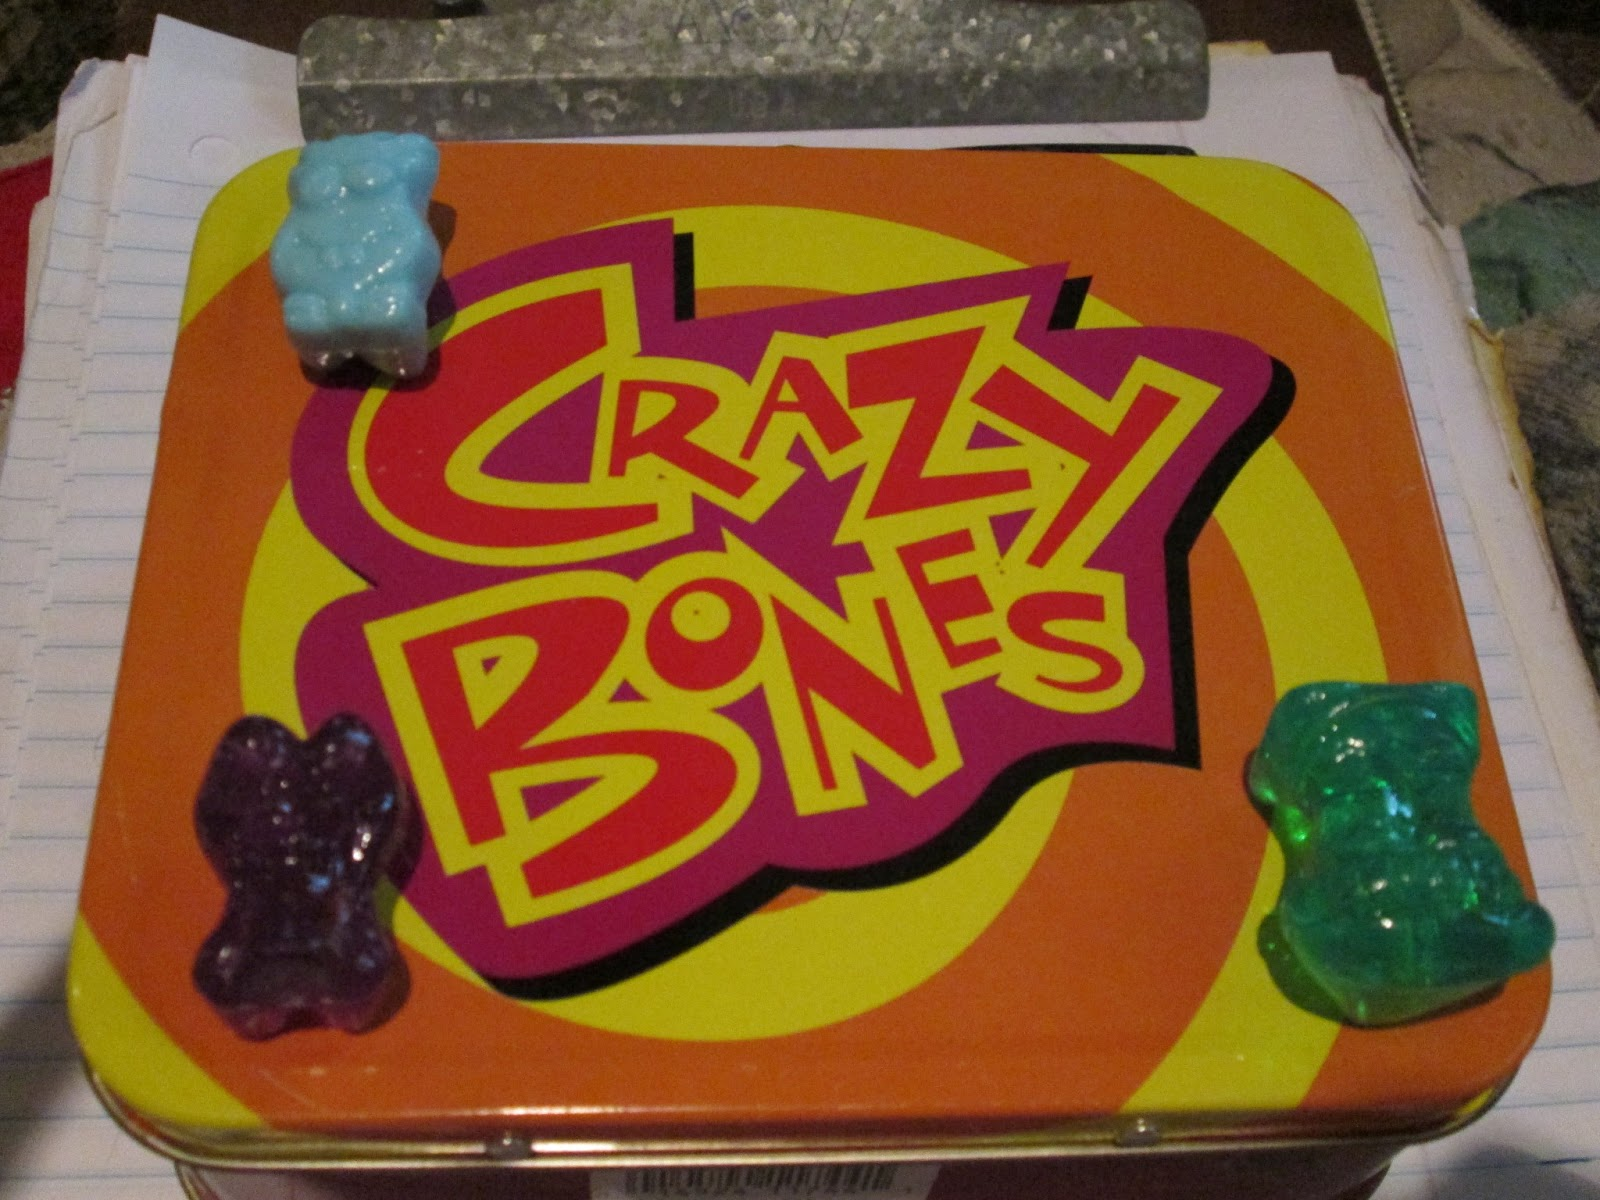 of Crazy Bones But Thought